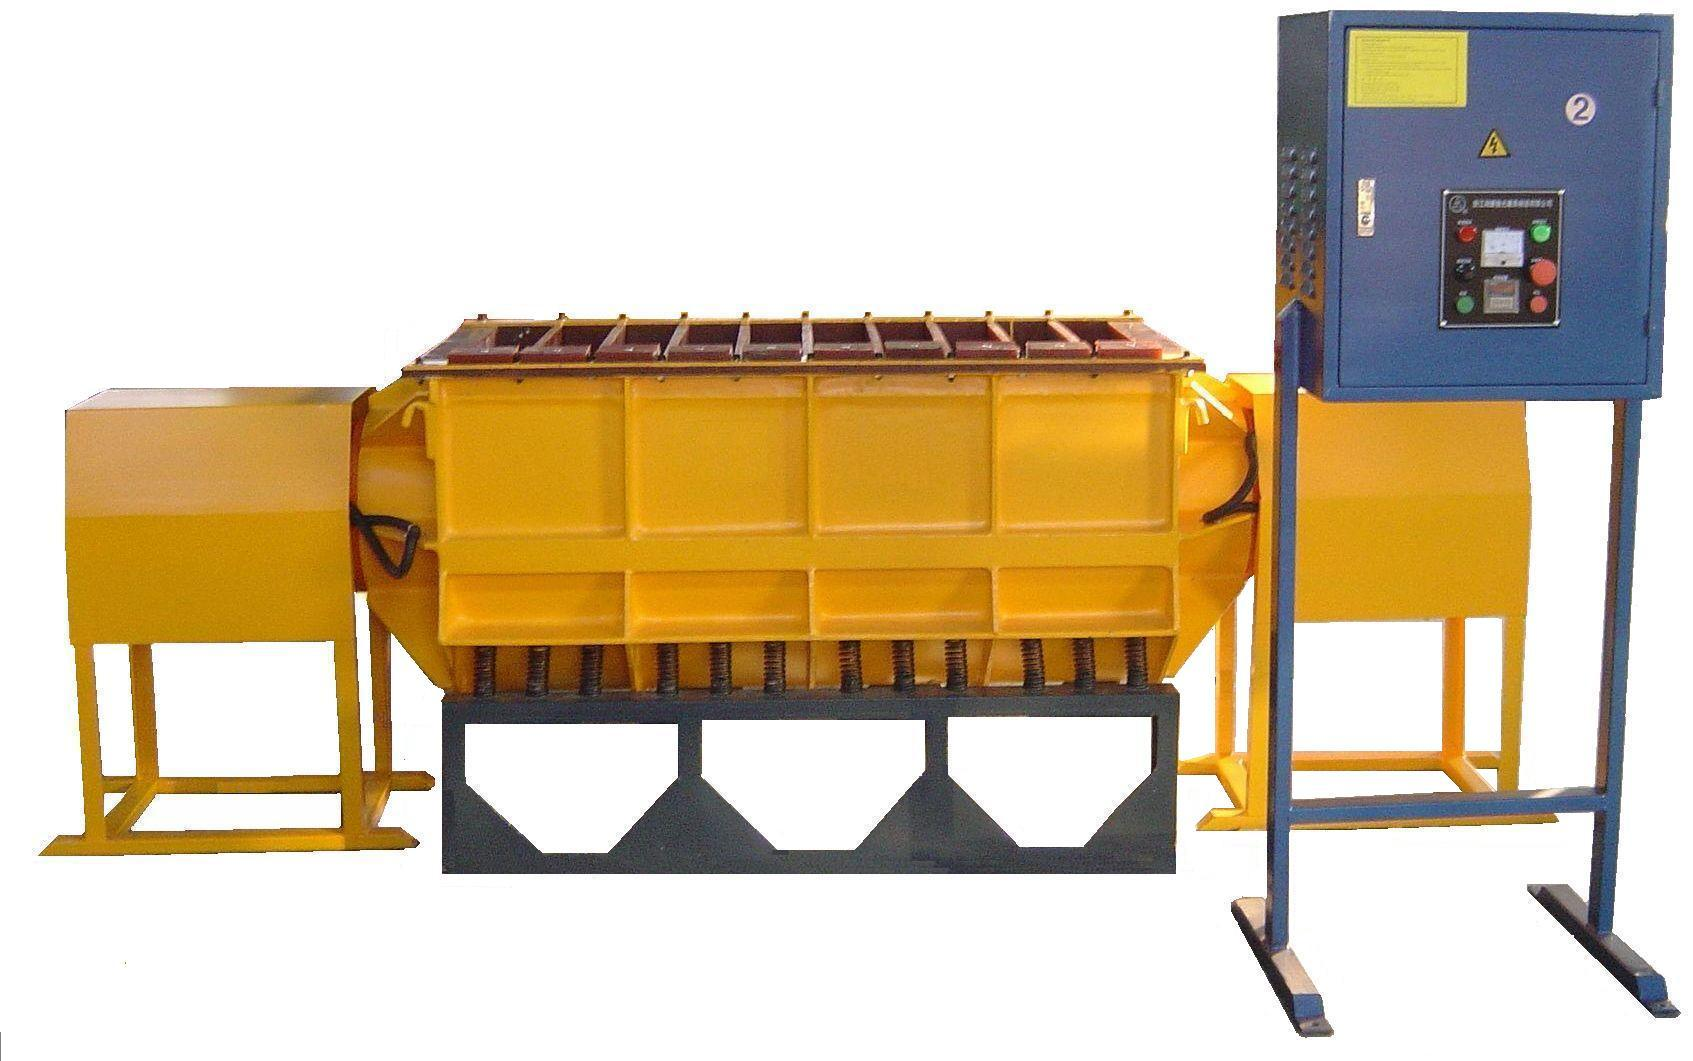 Linear type vibratory tumbling machine